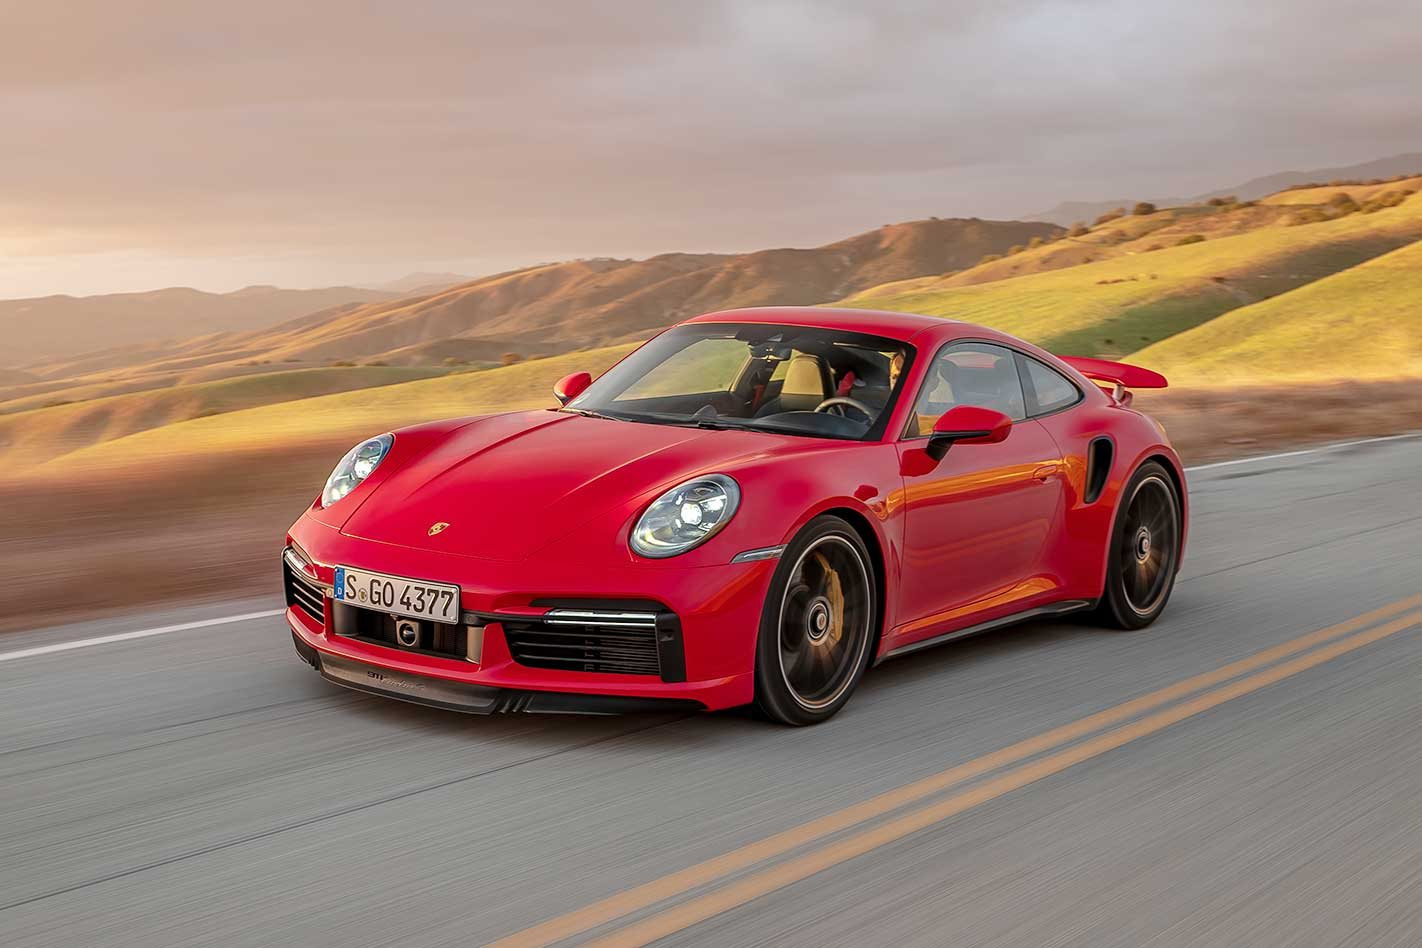 Porsche 992 911 Turbo S 2020 Review